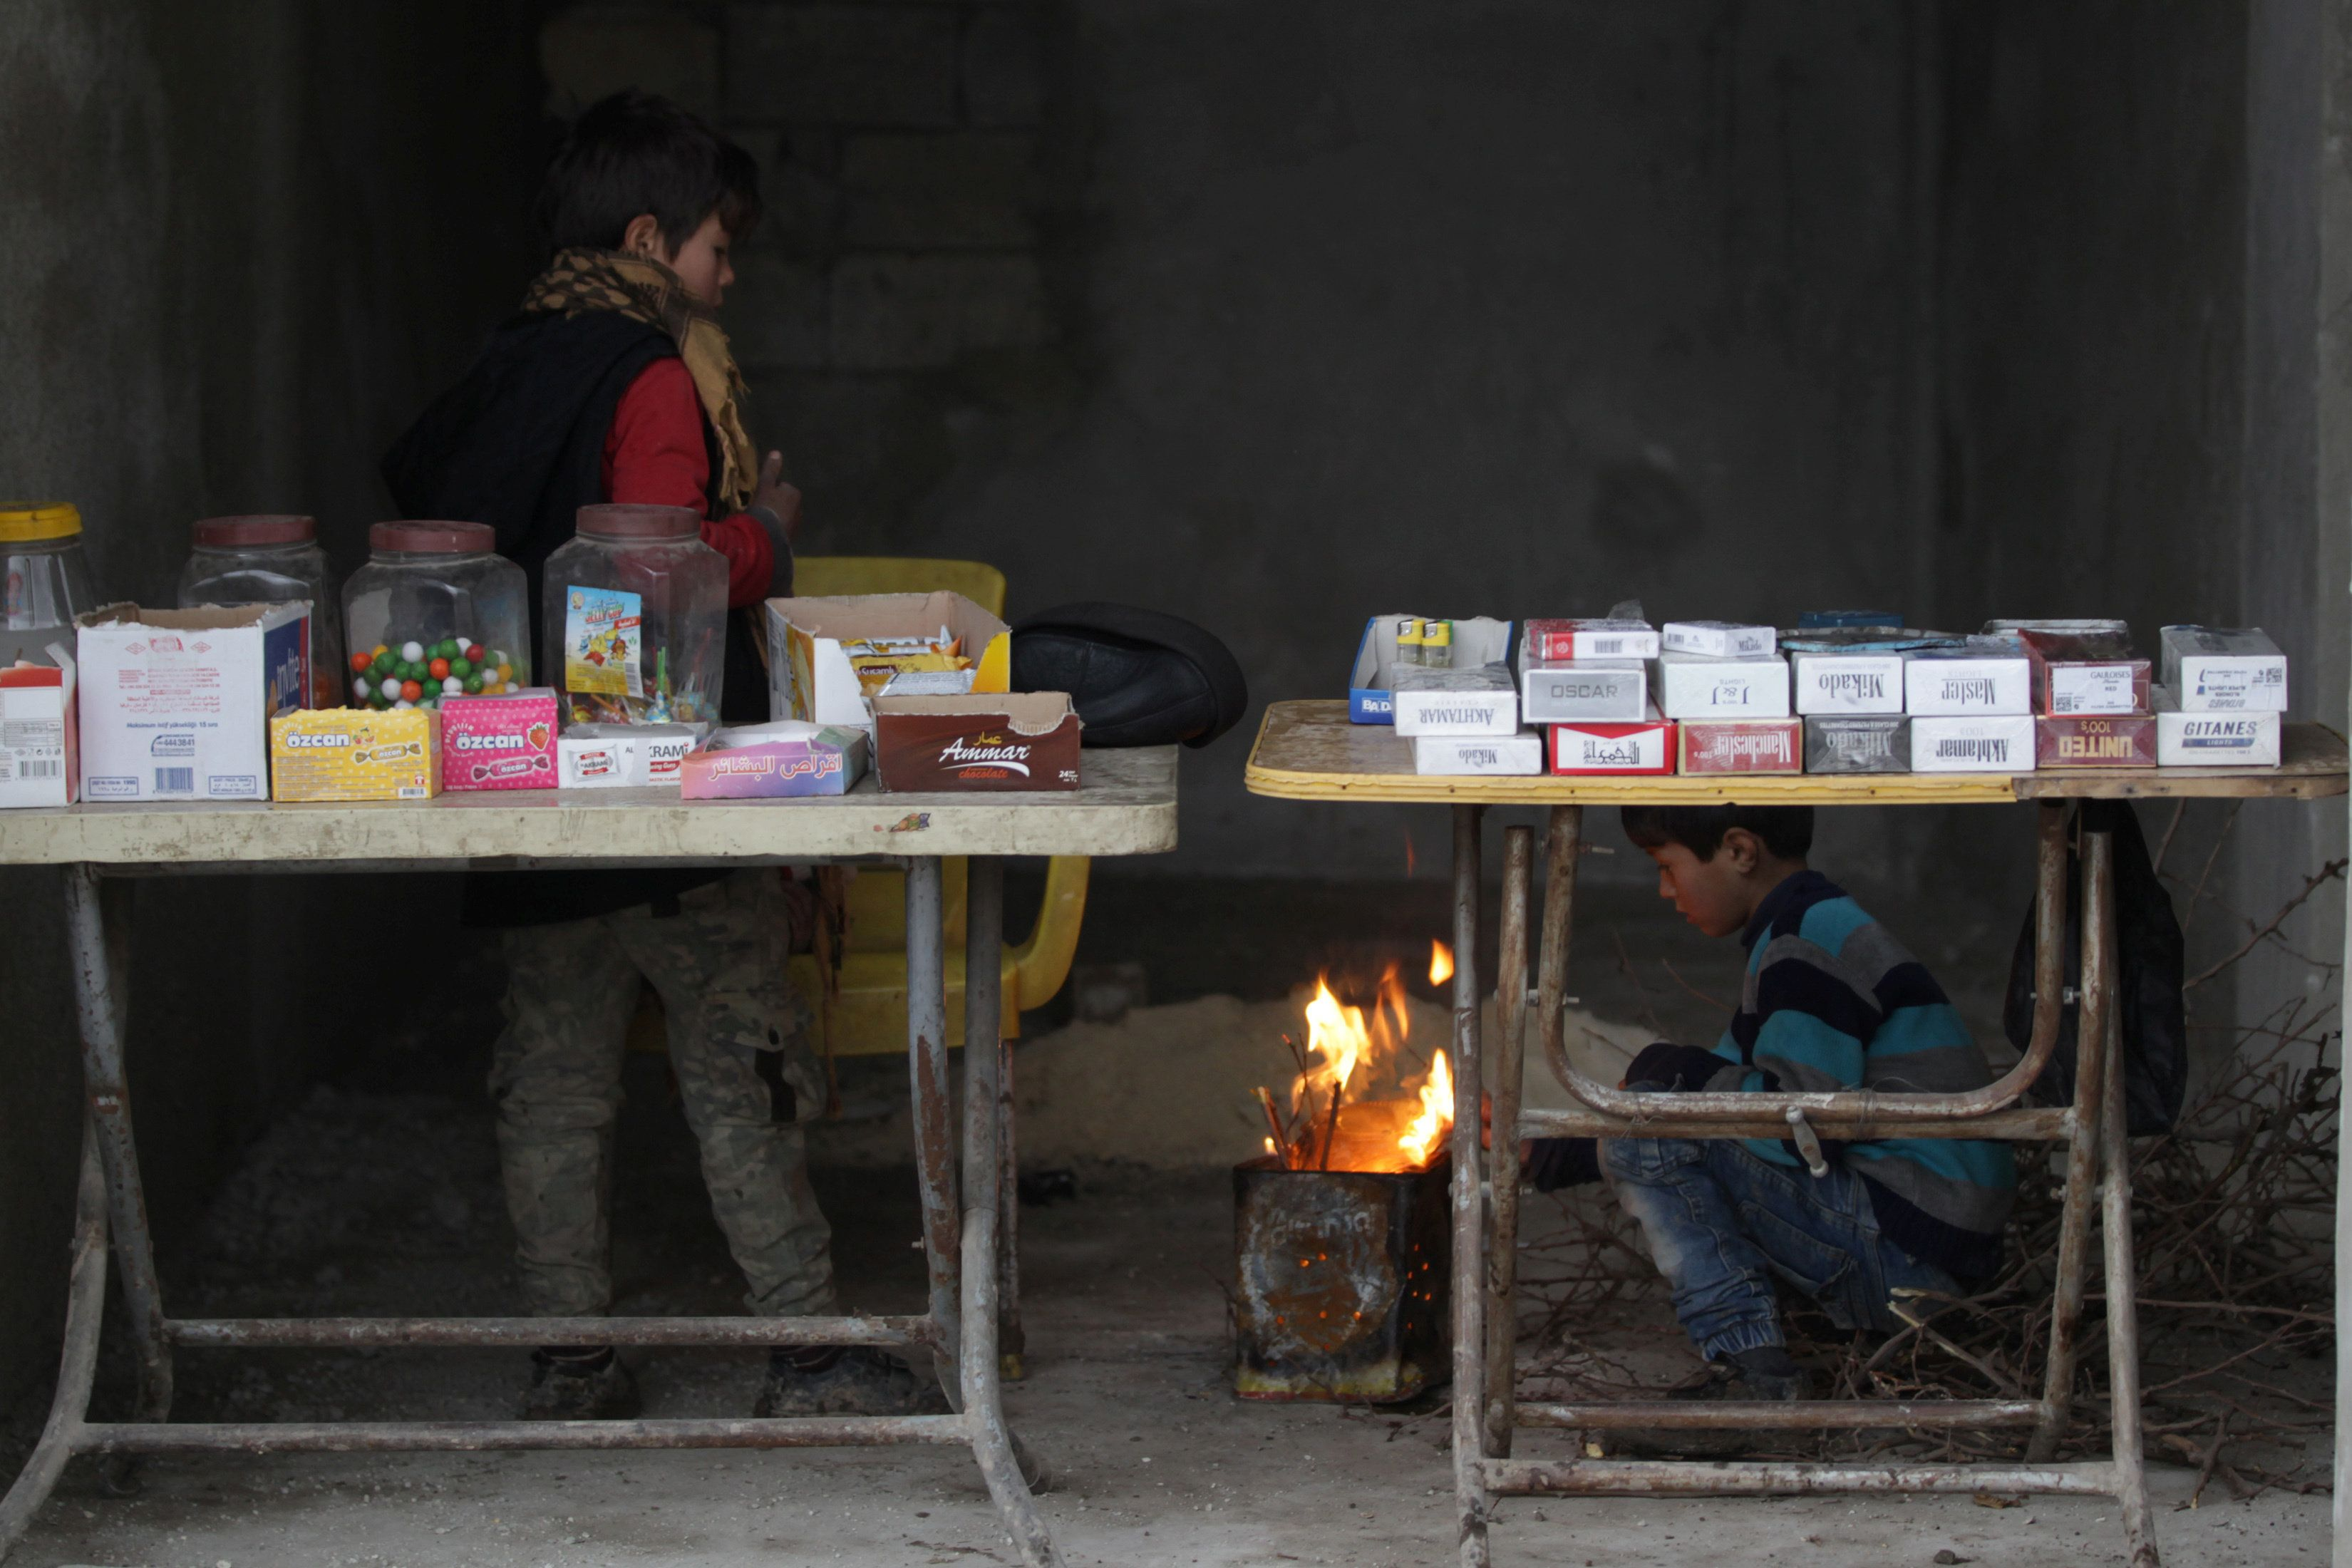 Children warm up by the fire near goods displayed for sale in al-Rai town on Jan. 27.